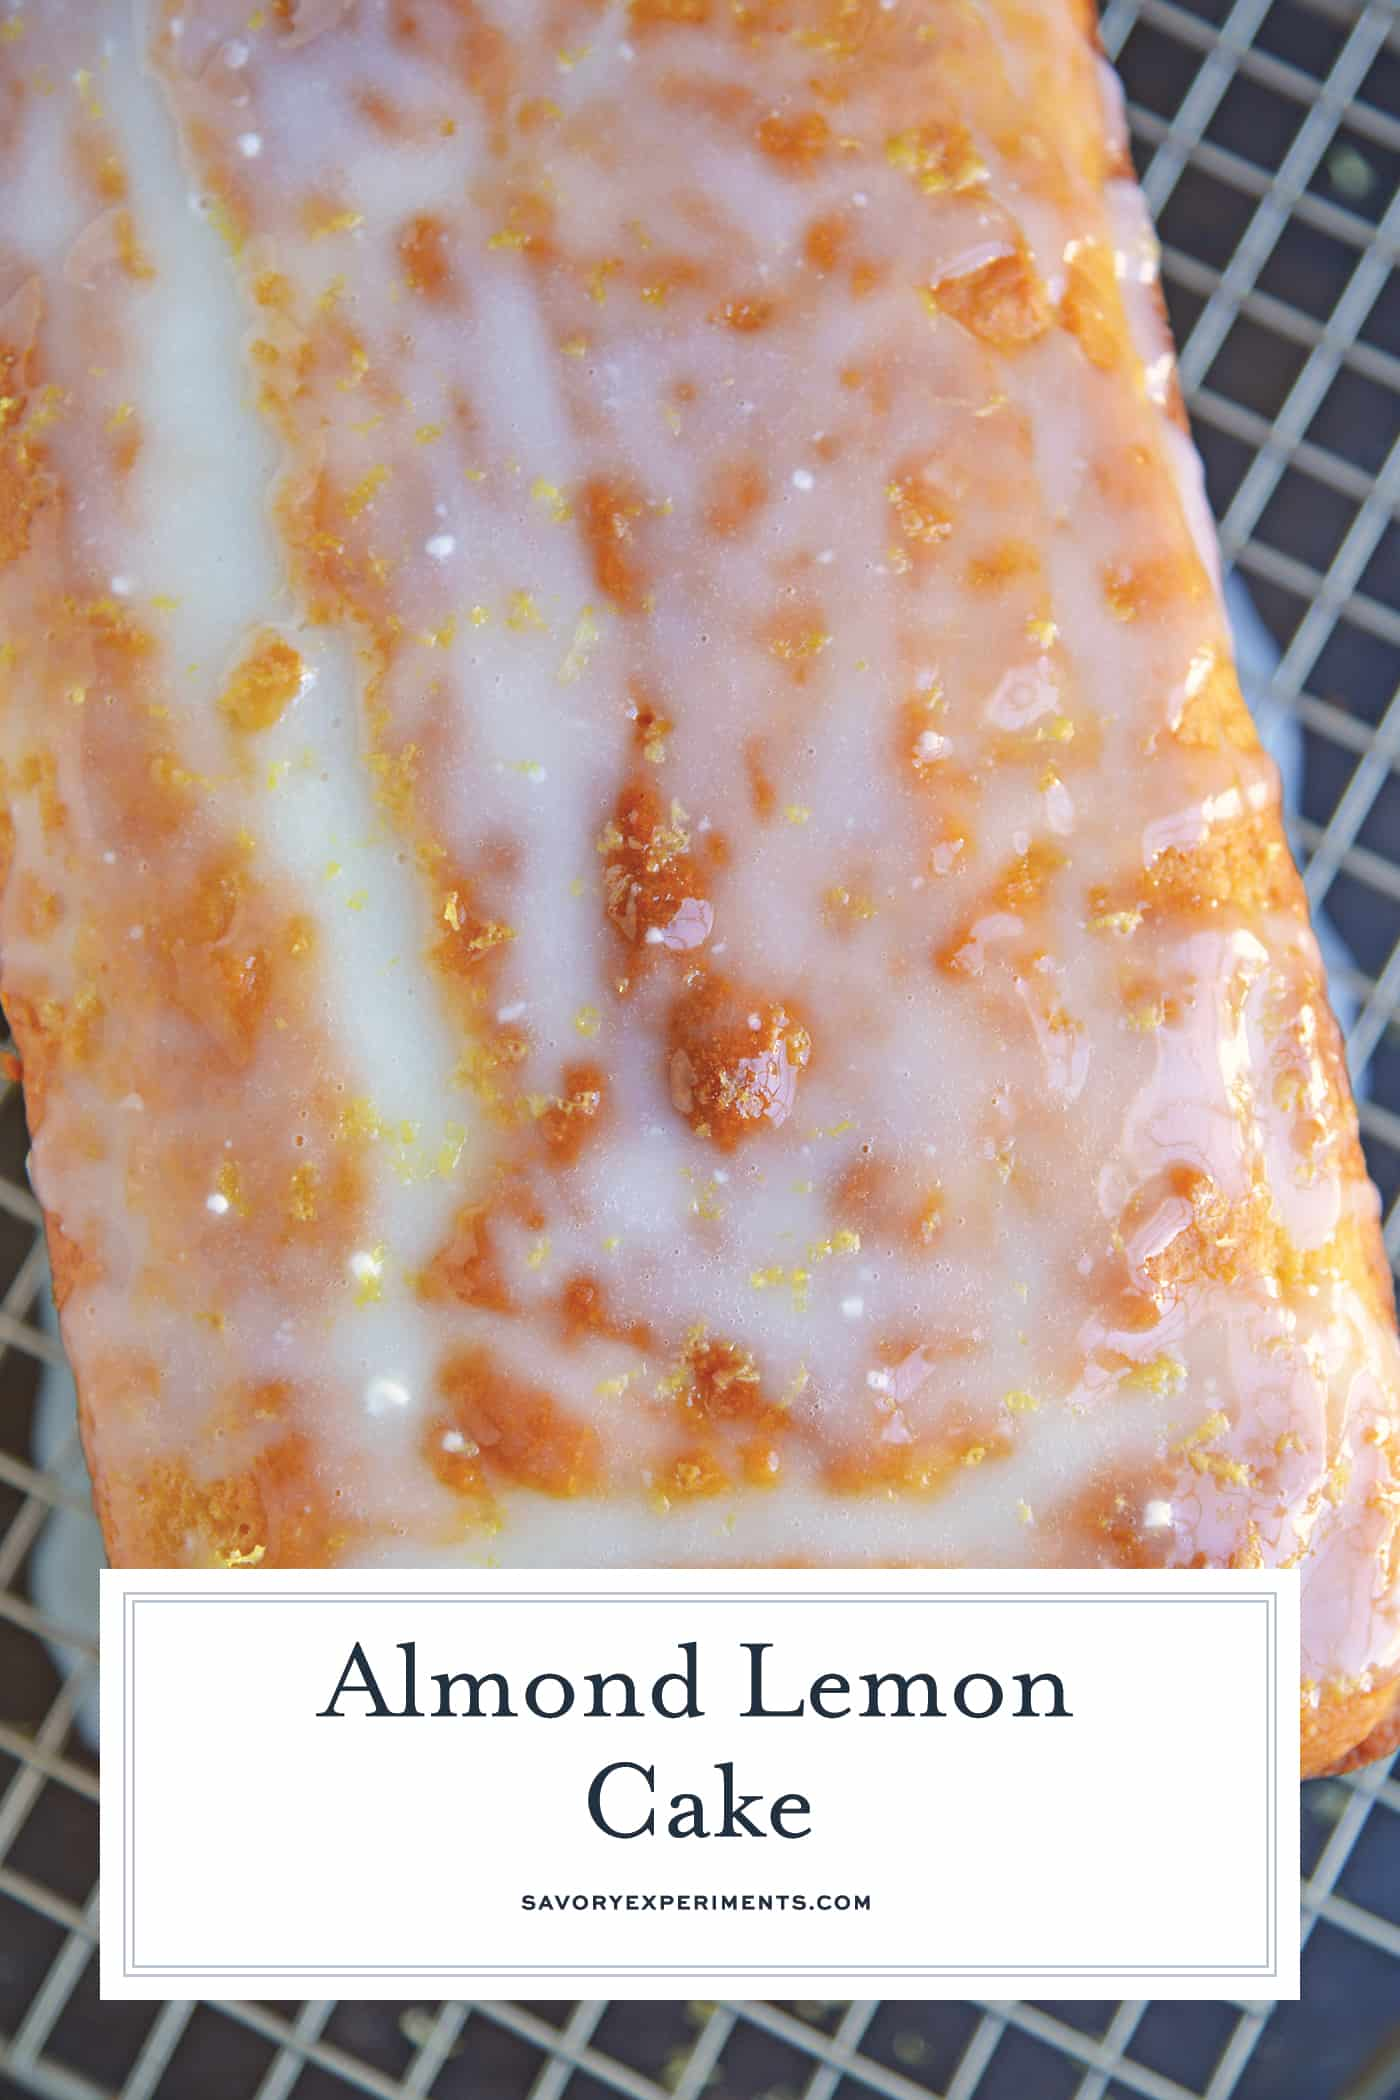 Yogurt, fresh lemon and almond give this sunny loaf cake a unique flavor and texture that everyone will love. Perfect for brunch, tea or dessert! #loafcake #lemoncake #almondcake www.savoryexperiments.com